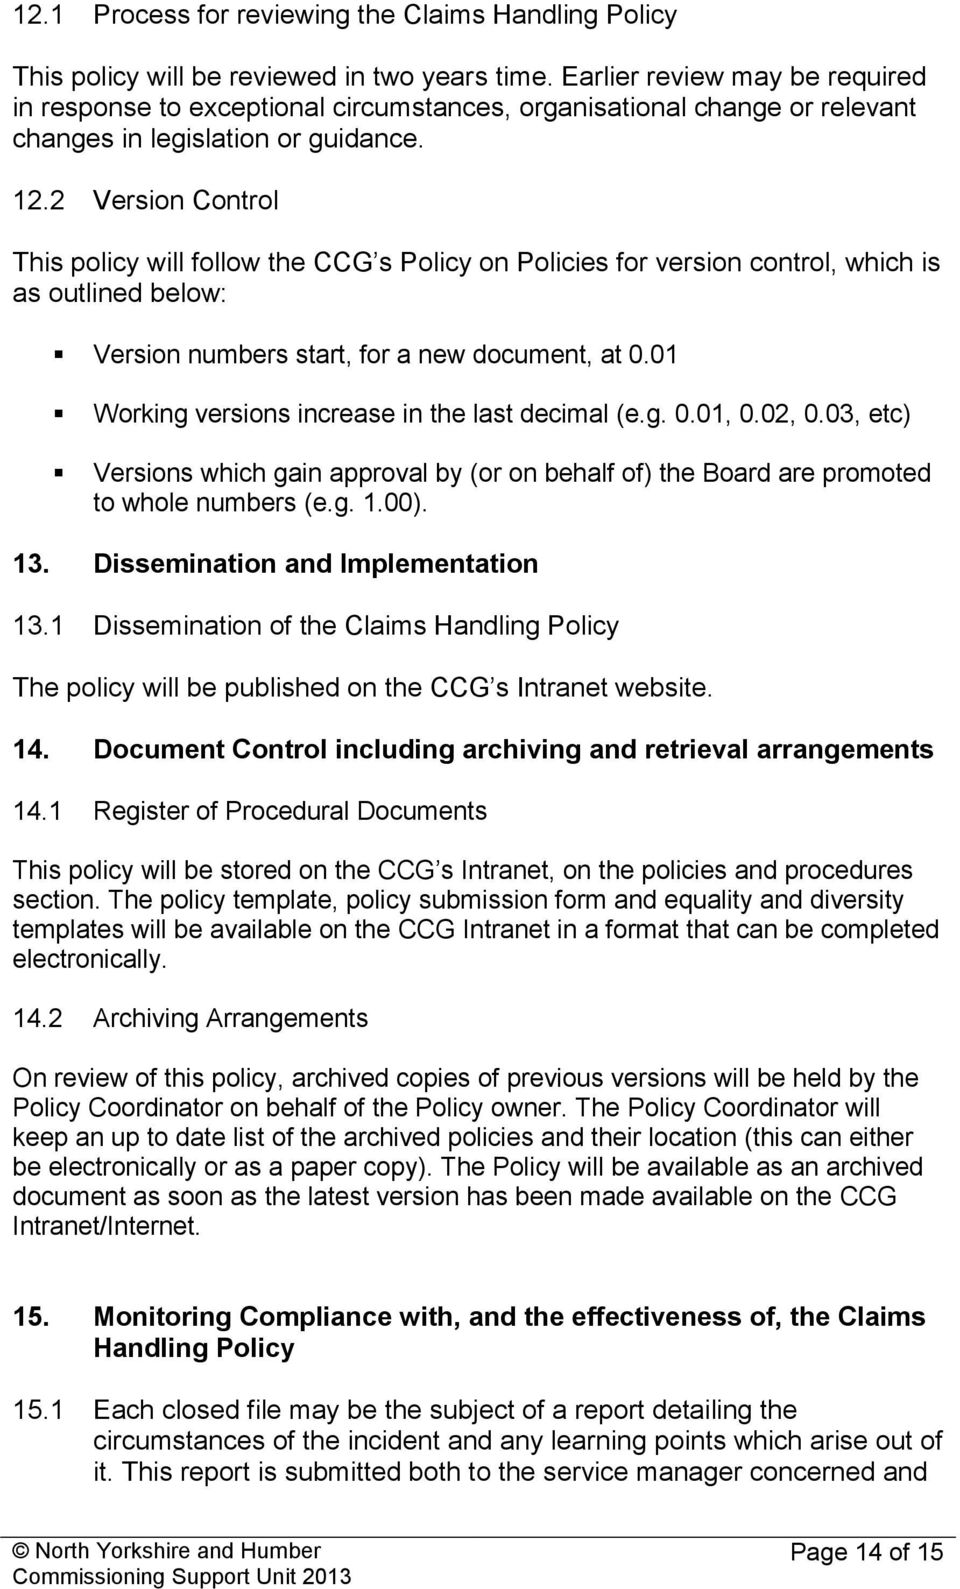 2 Version Control This policy will follow the CCG s Policy on Policies for version control, which is as outlined below: Version numbers start, for a new document, at 0.